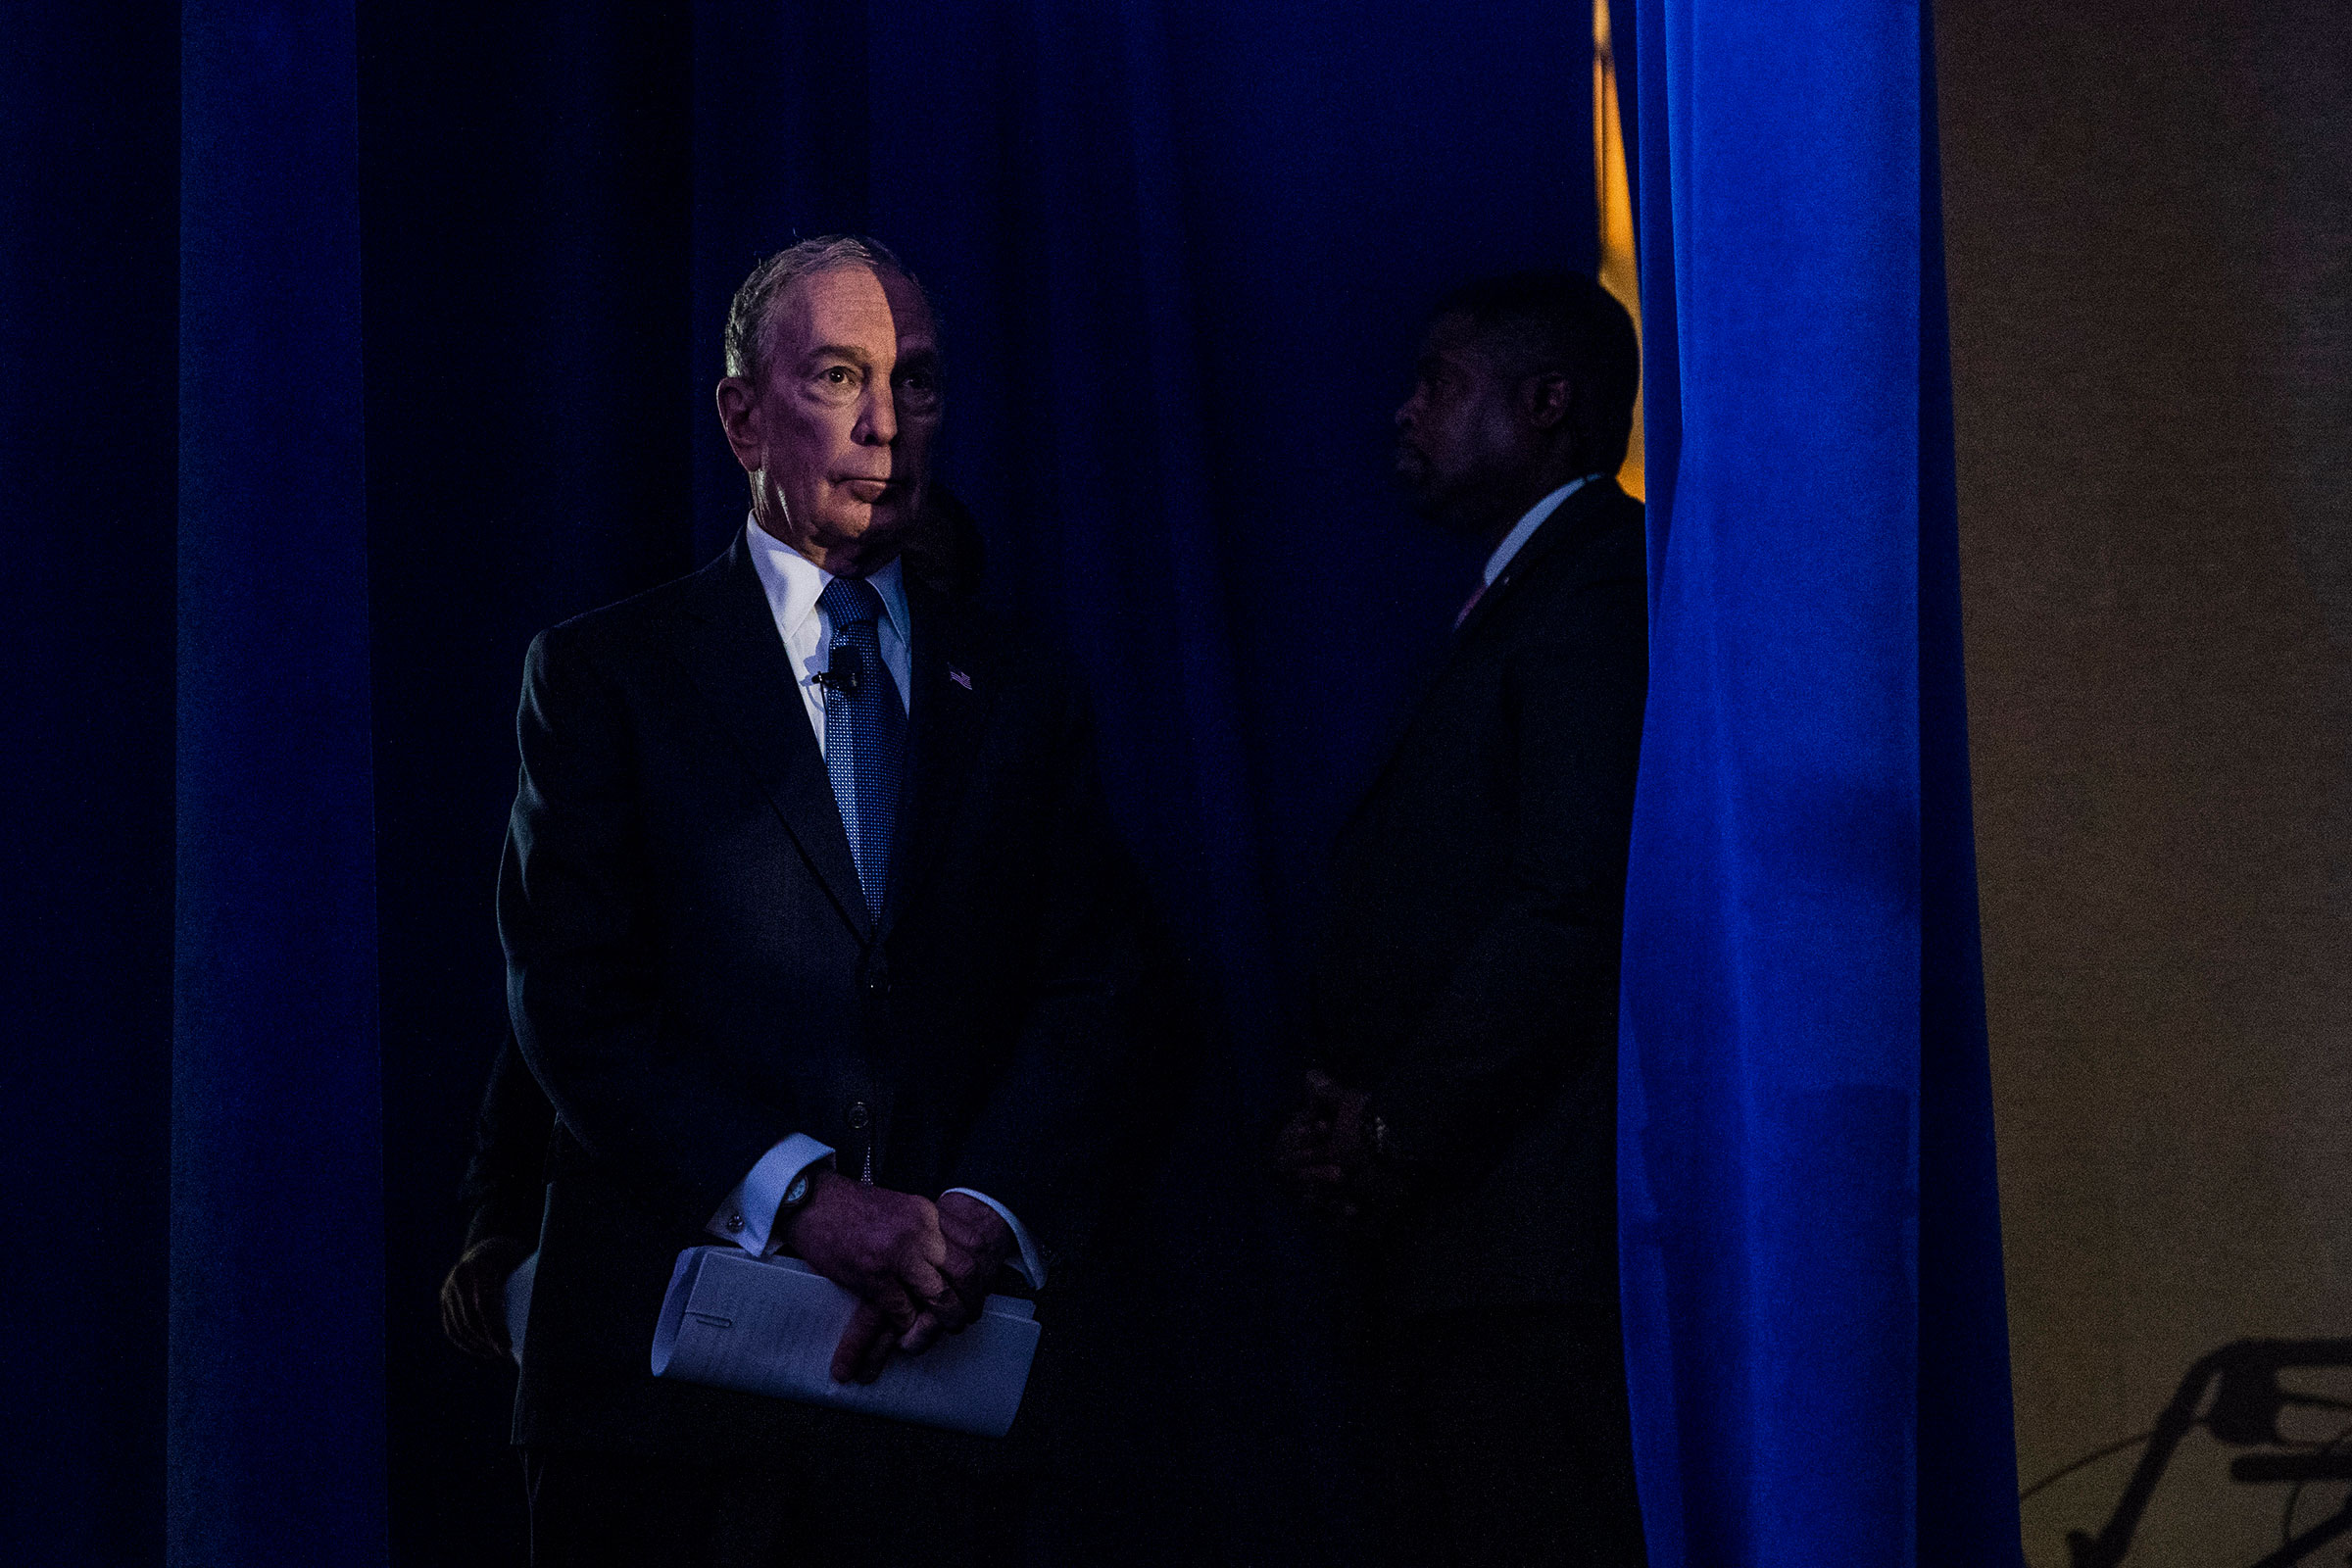 Former New York Mayor Michael Bloomoberg, then a Democratuc candidate for president, waits to speak at a campaign event in McLean, Va., on Feb. 29, 2020.